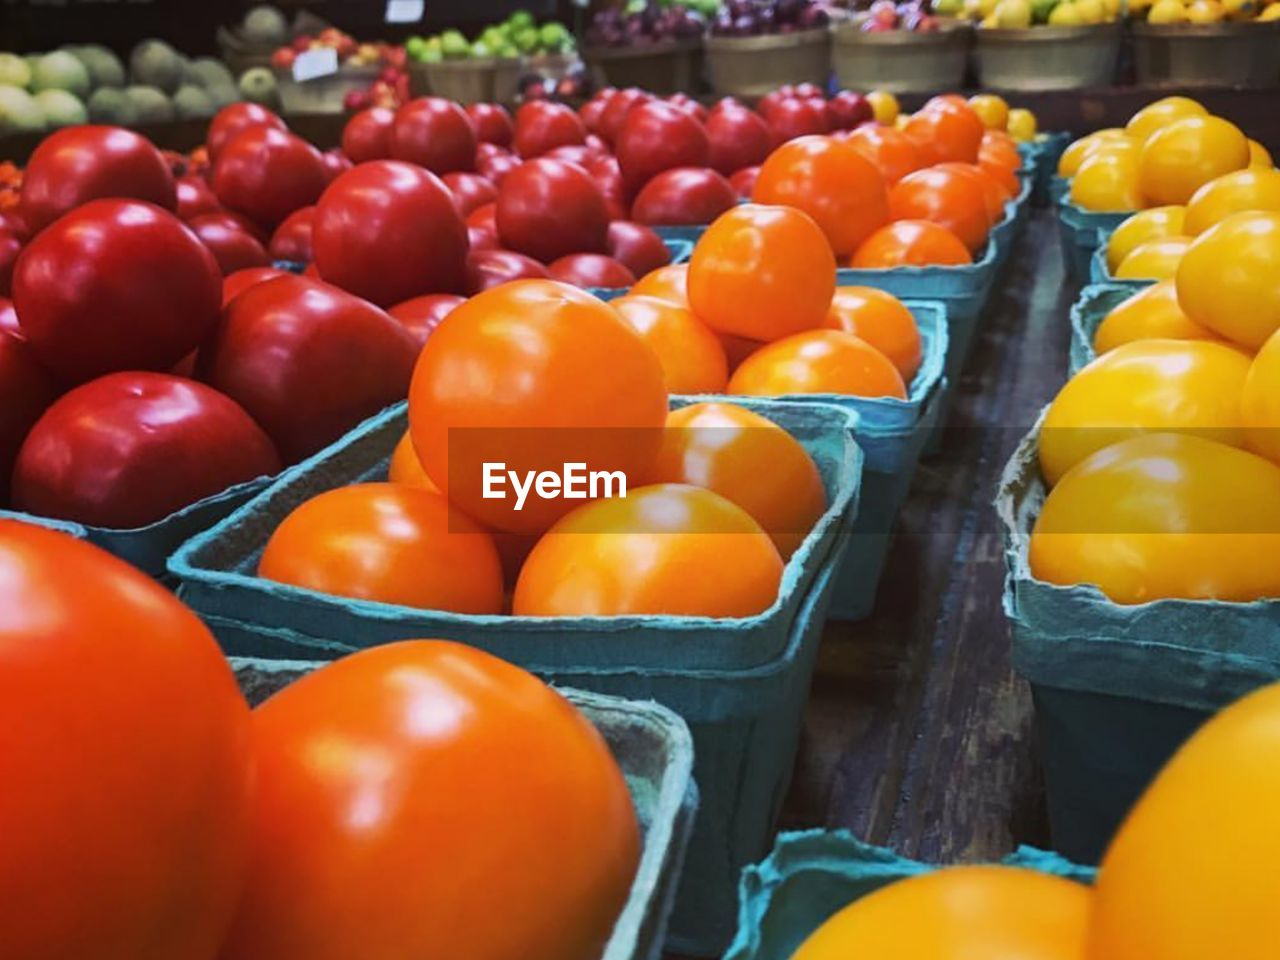 TOMATOES FOR SALE IN MARKET STALL